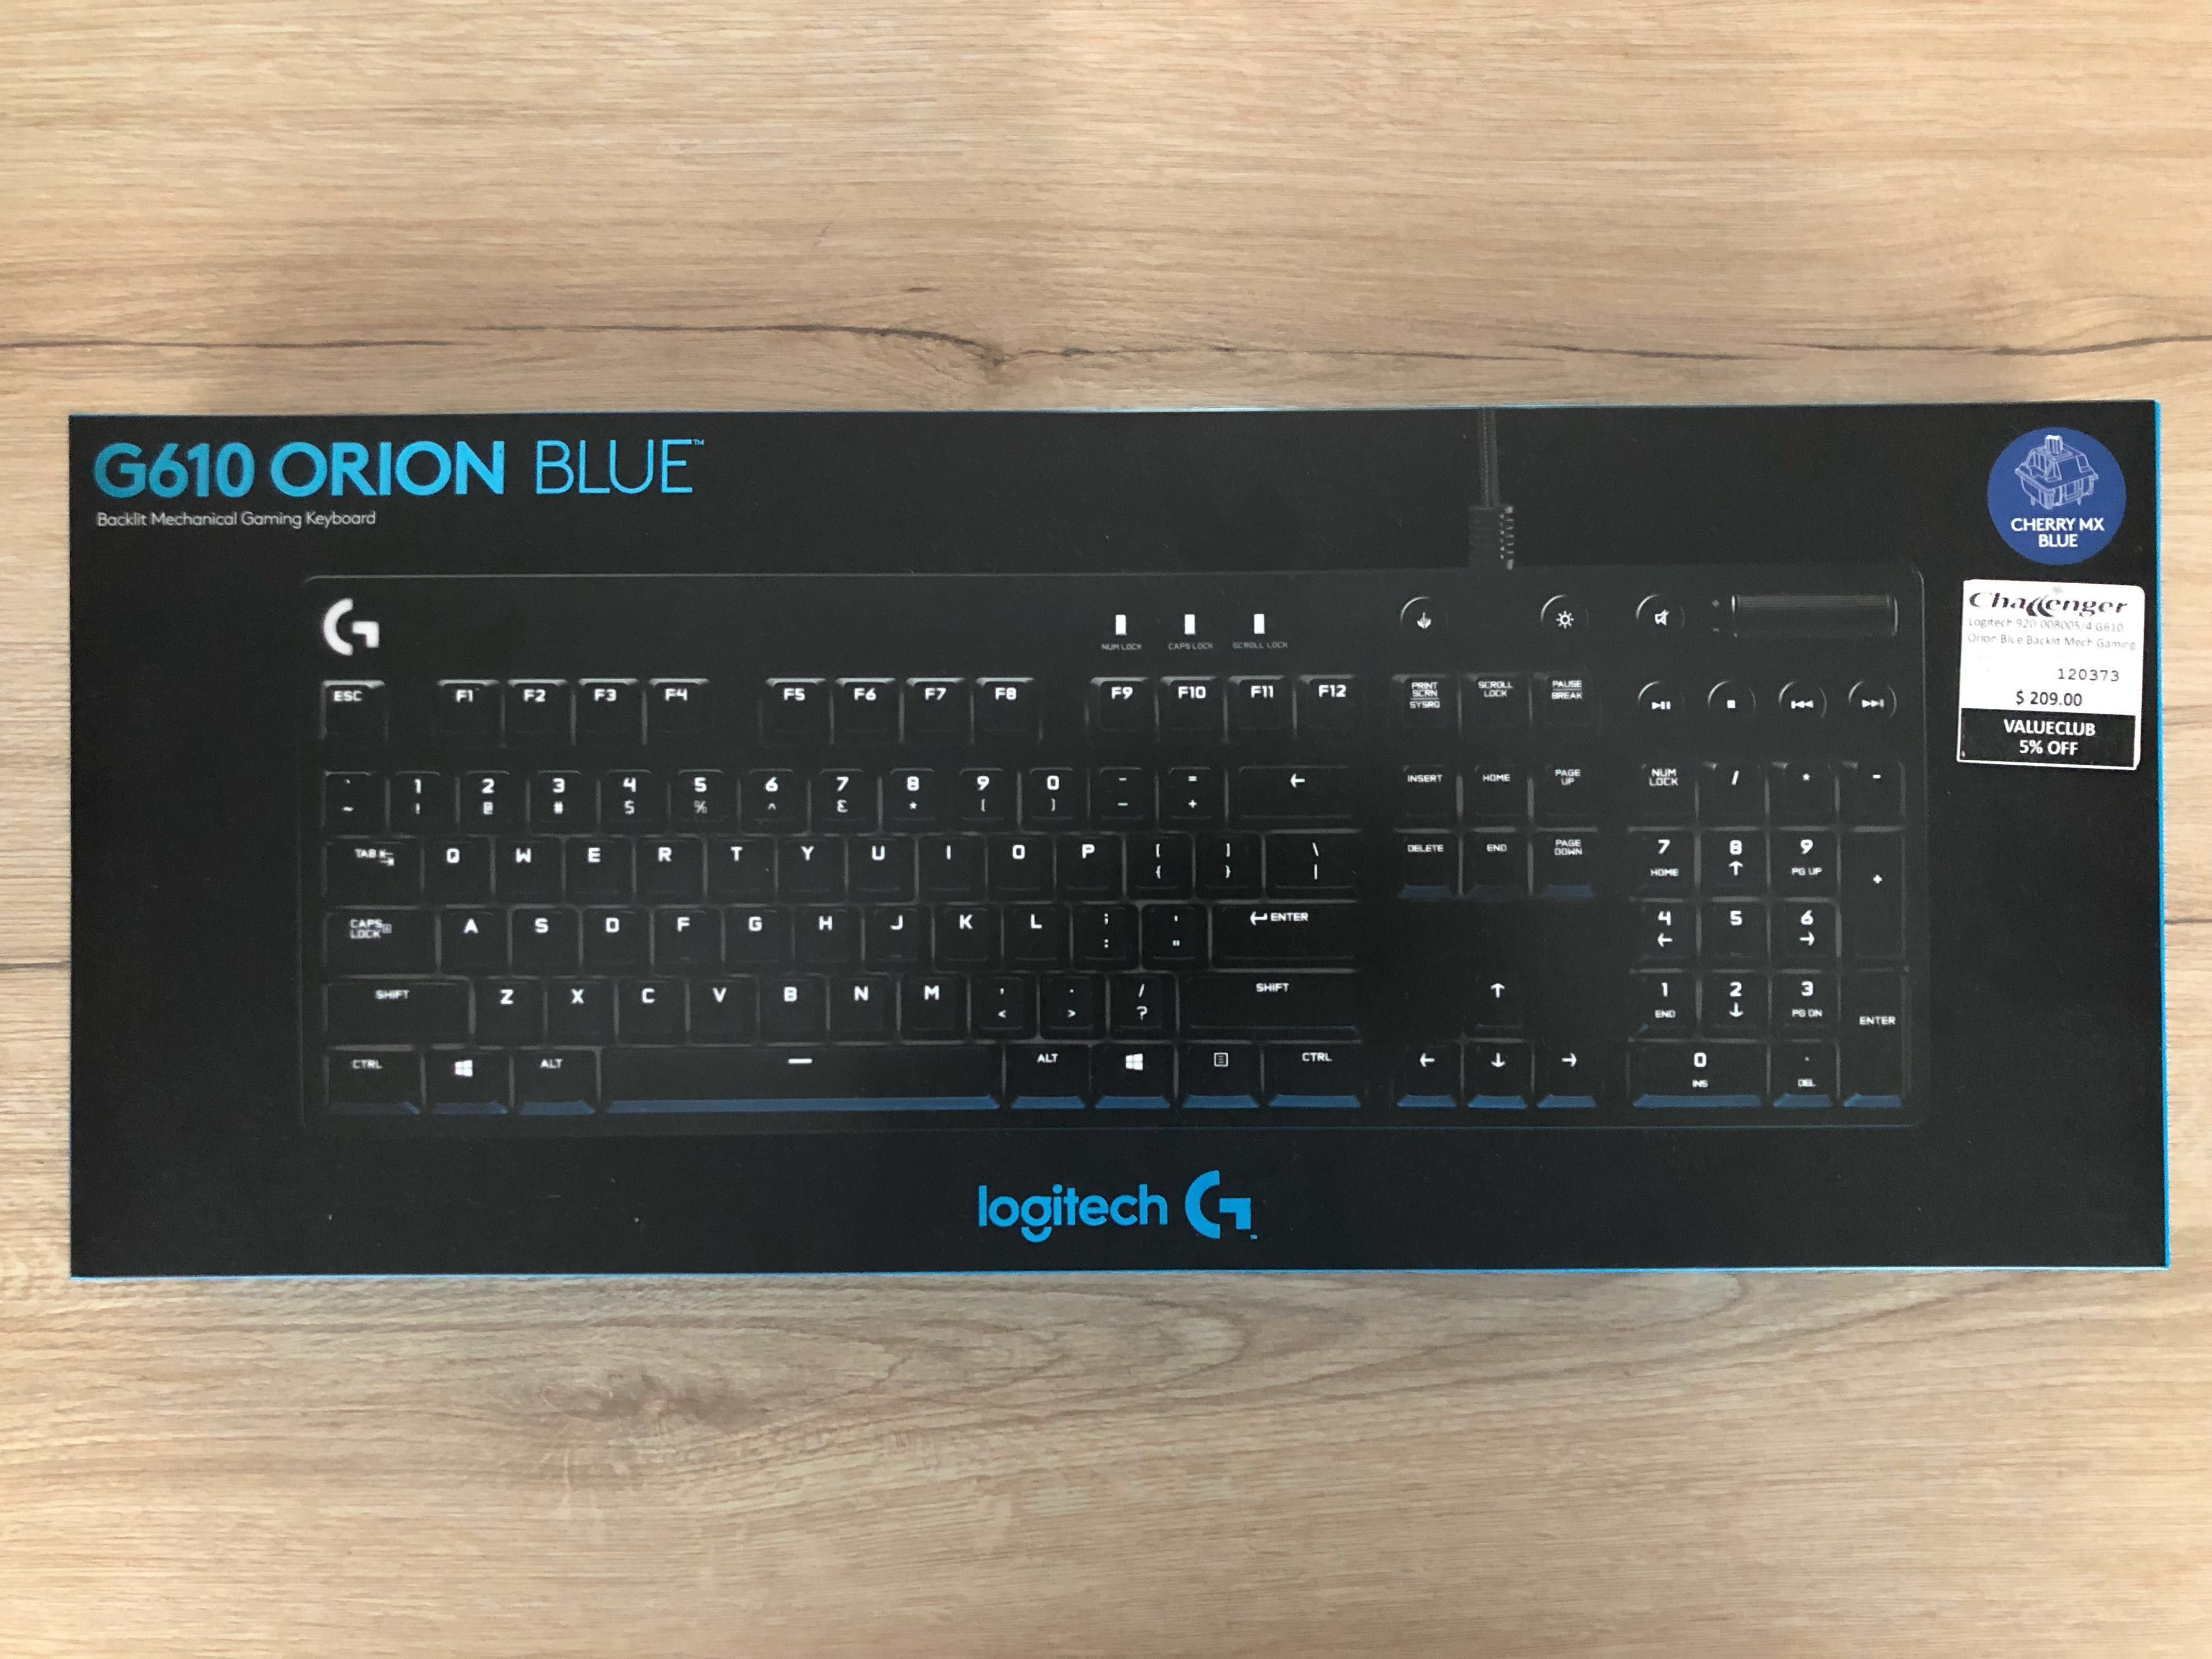 35c0332c019 Brand New Logitech G610 Orion Blue Backlit Mechanical Gaming Keyboard (True  Cherry MX Blue Switches), Electronics, Computer Parts & Accessories on  Carousell